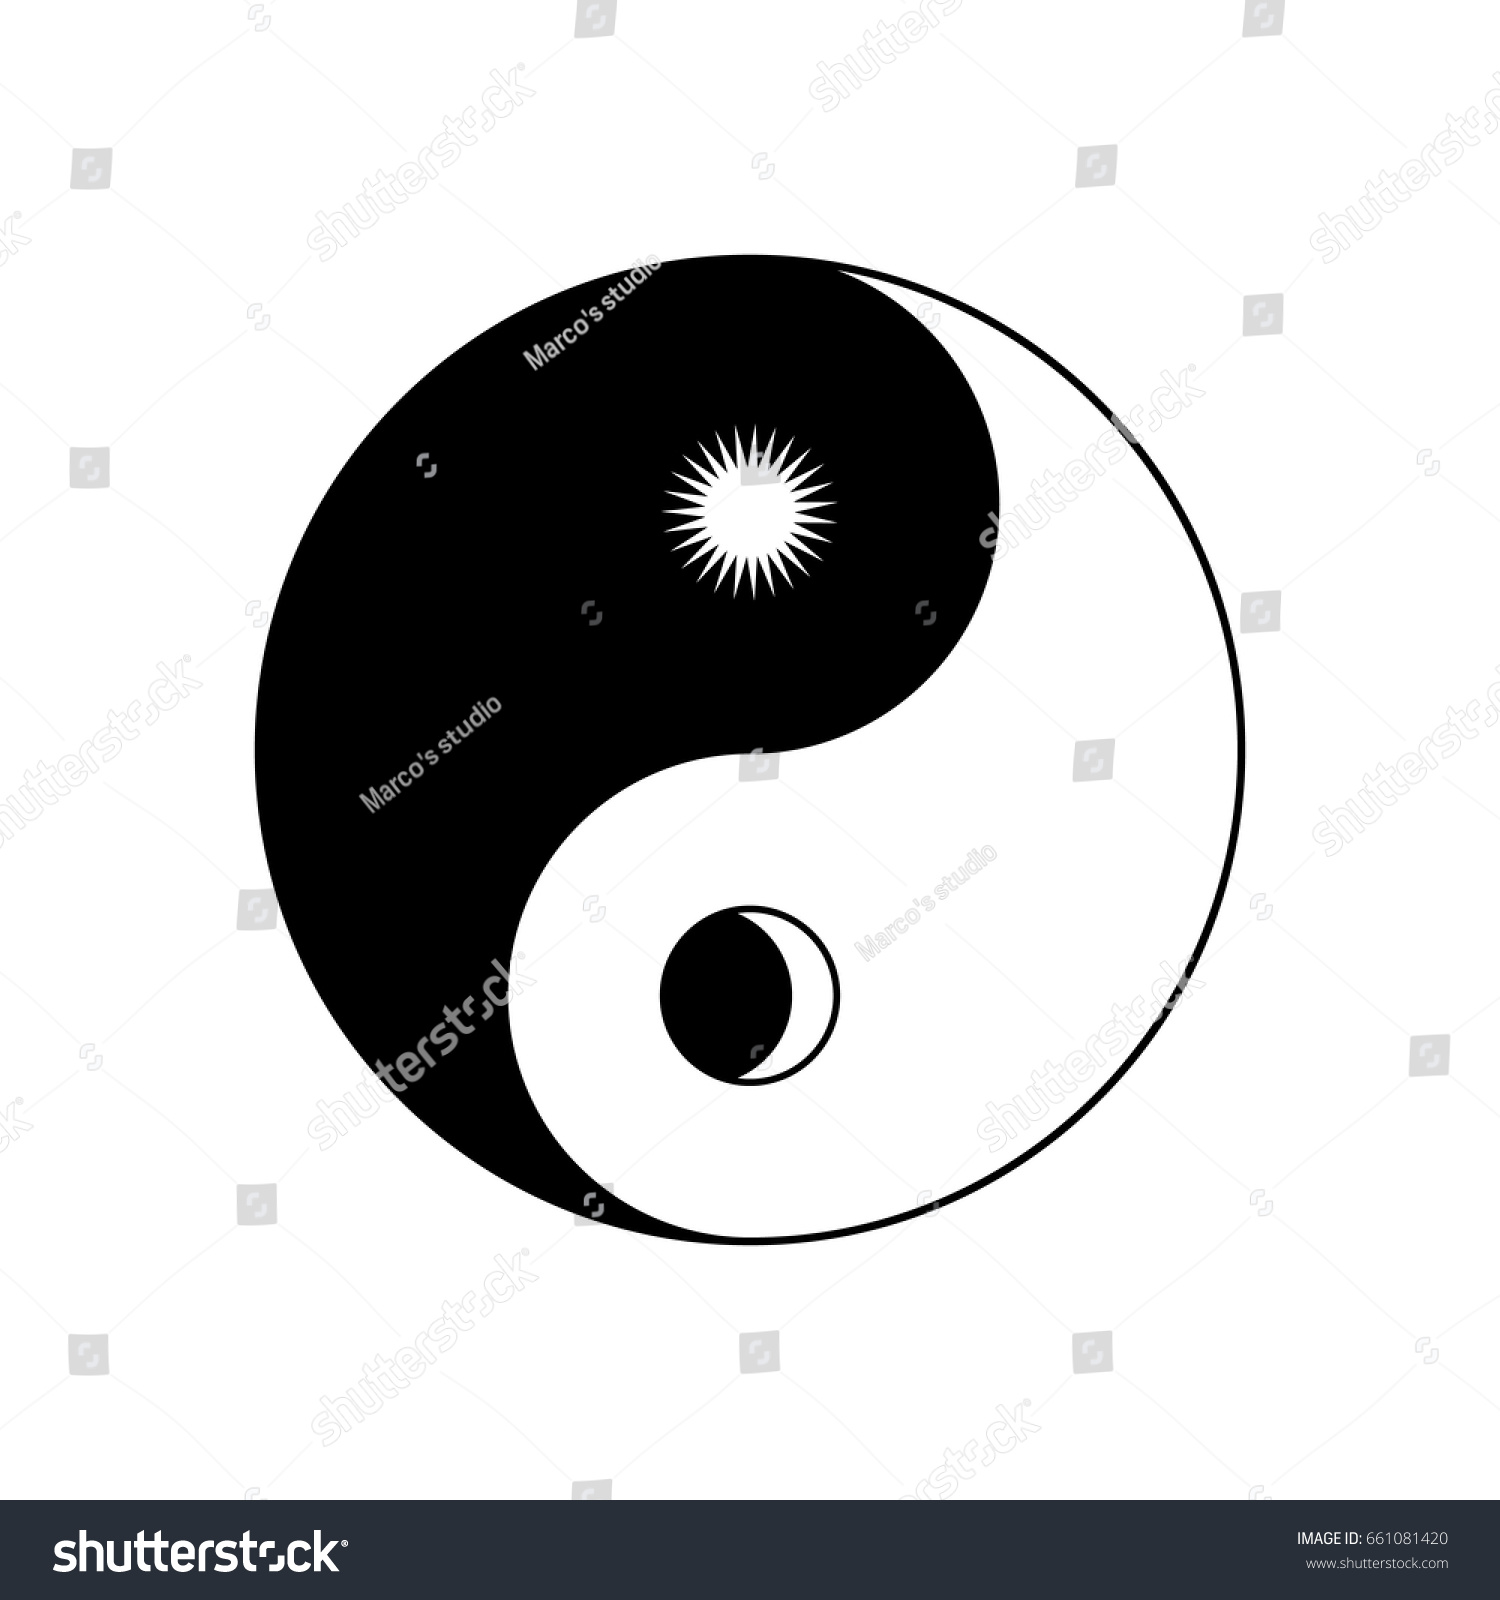 Yin yang symbol sun moon stock vector 661081420 shutterstock yin yang symbol with sun and moon biocorpaavc Images